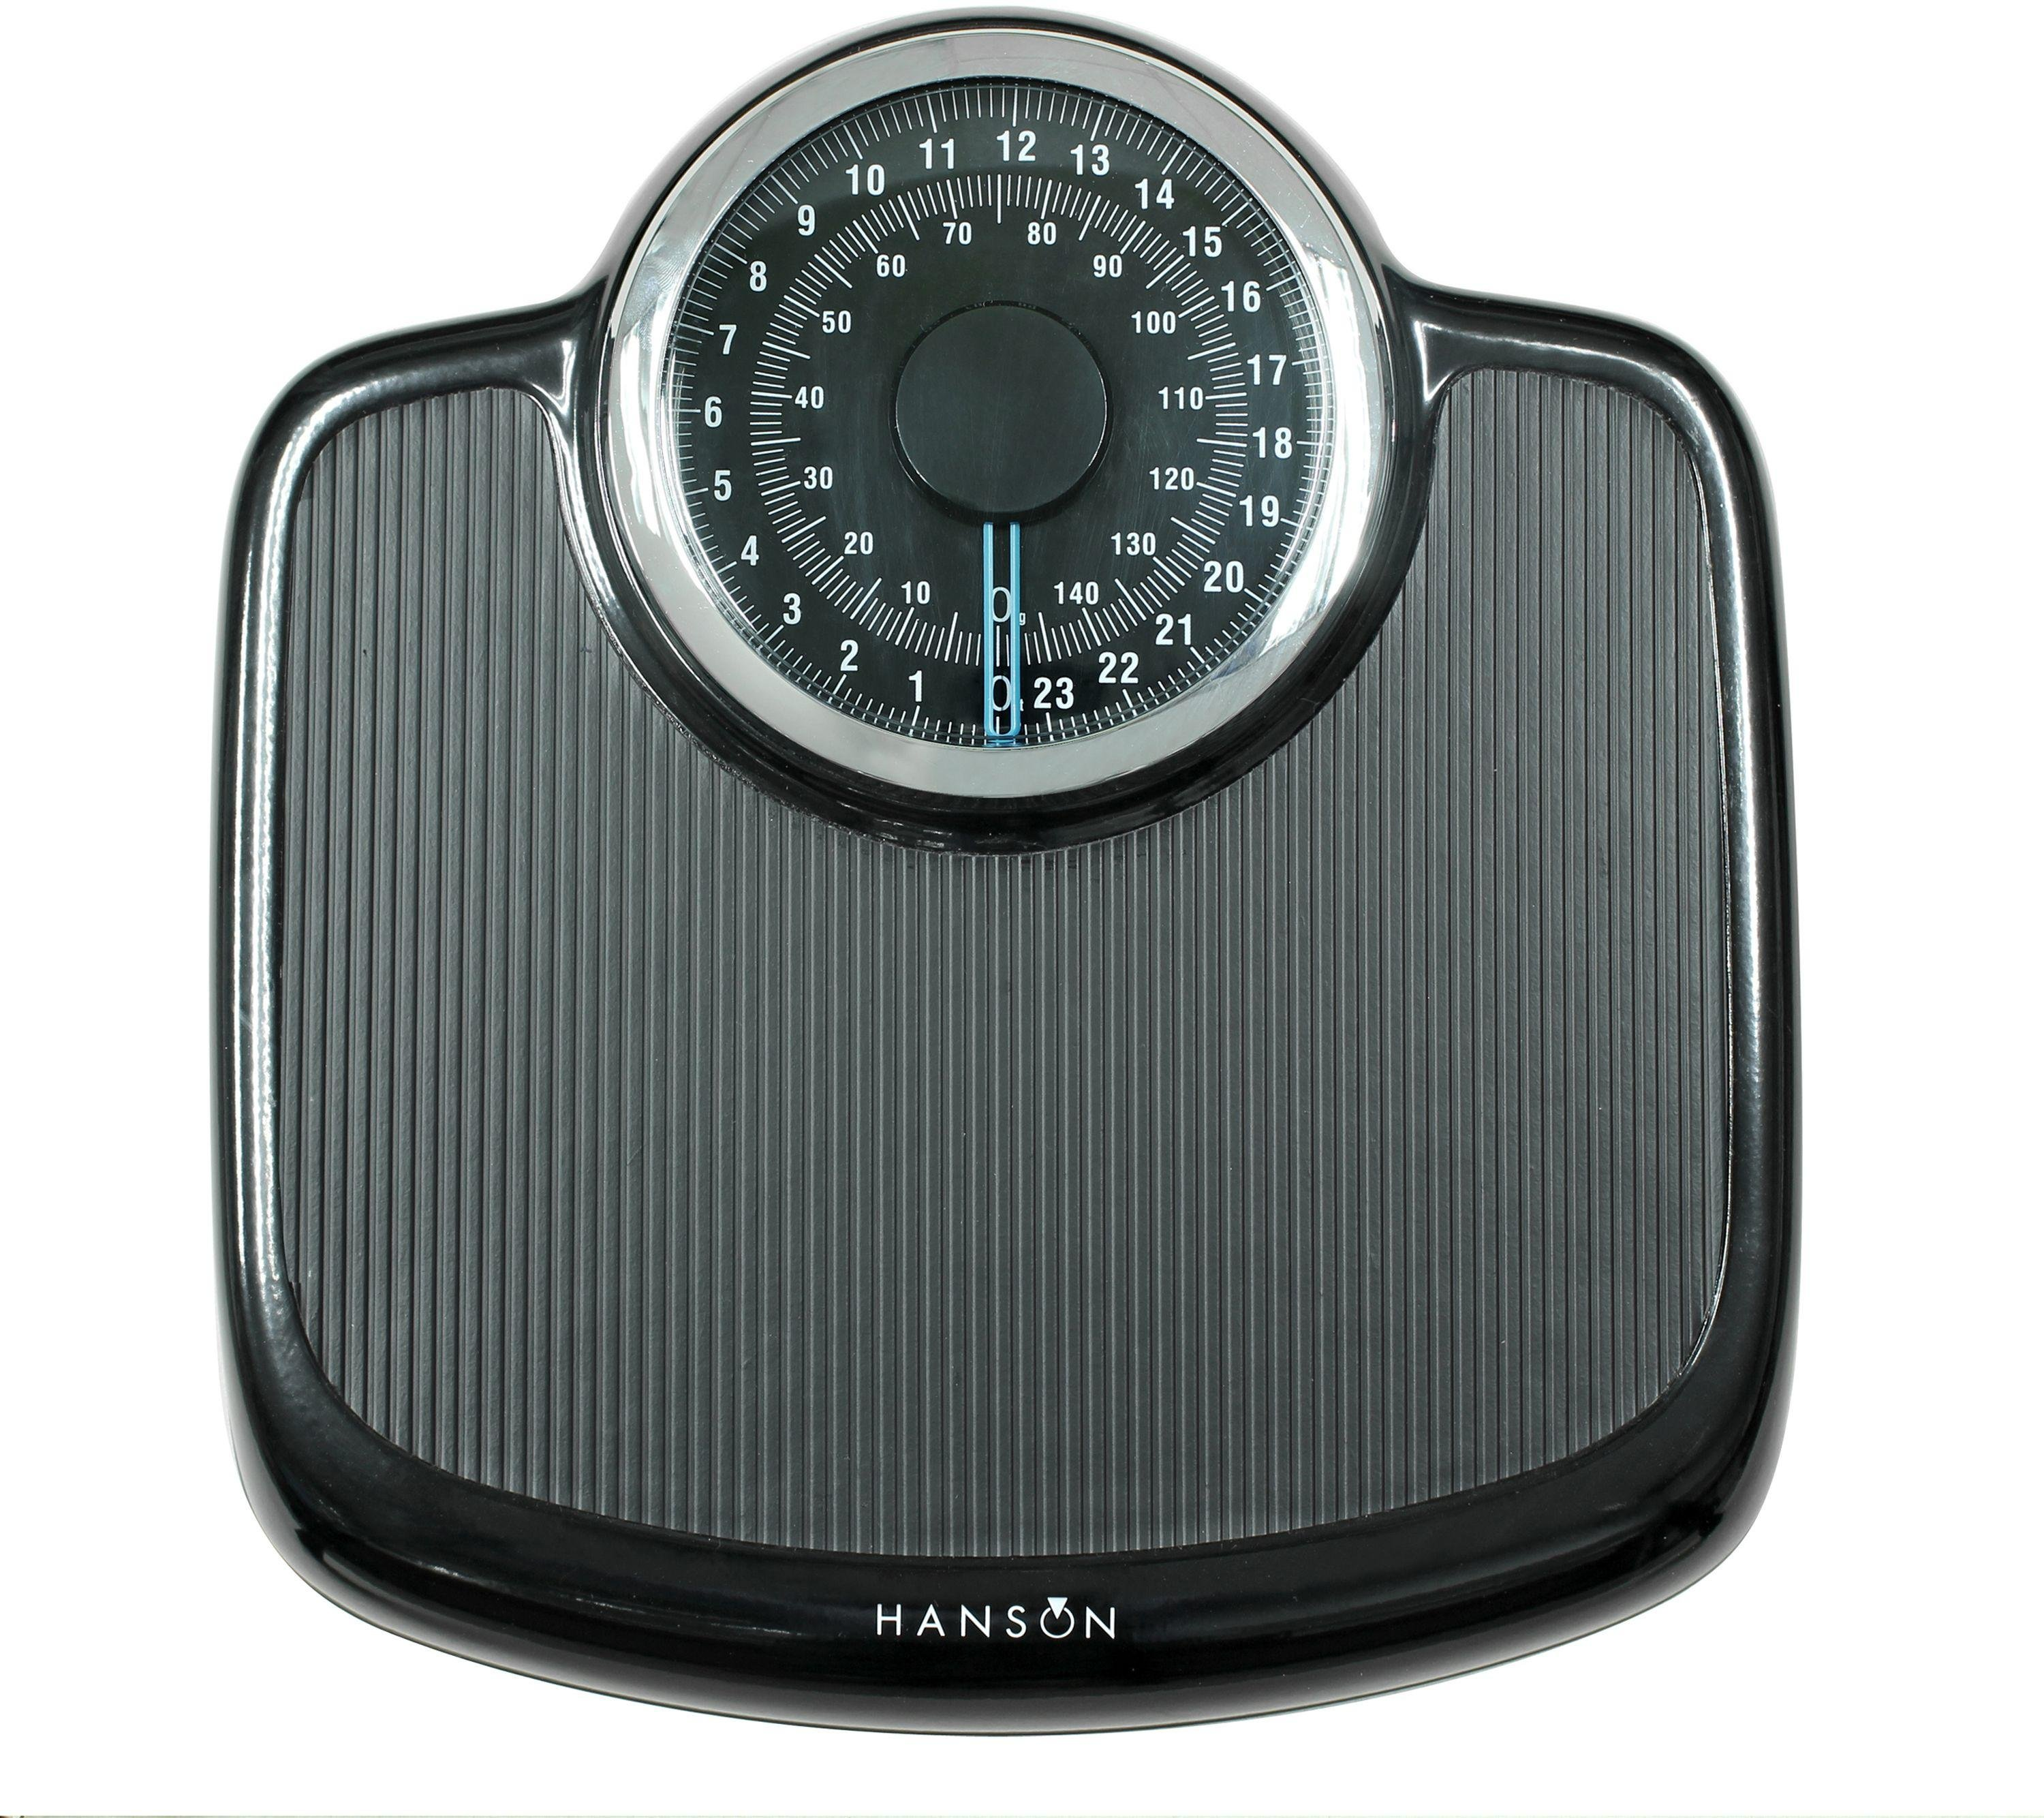 Image of Hanson Neo Large Dial Mechanical Scale - Black